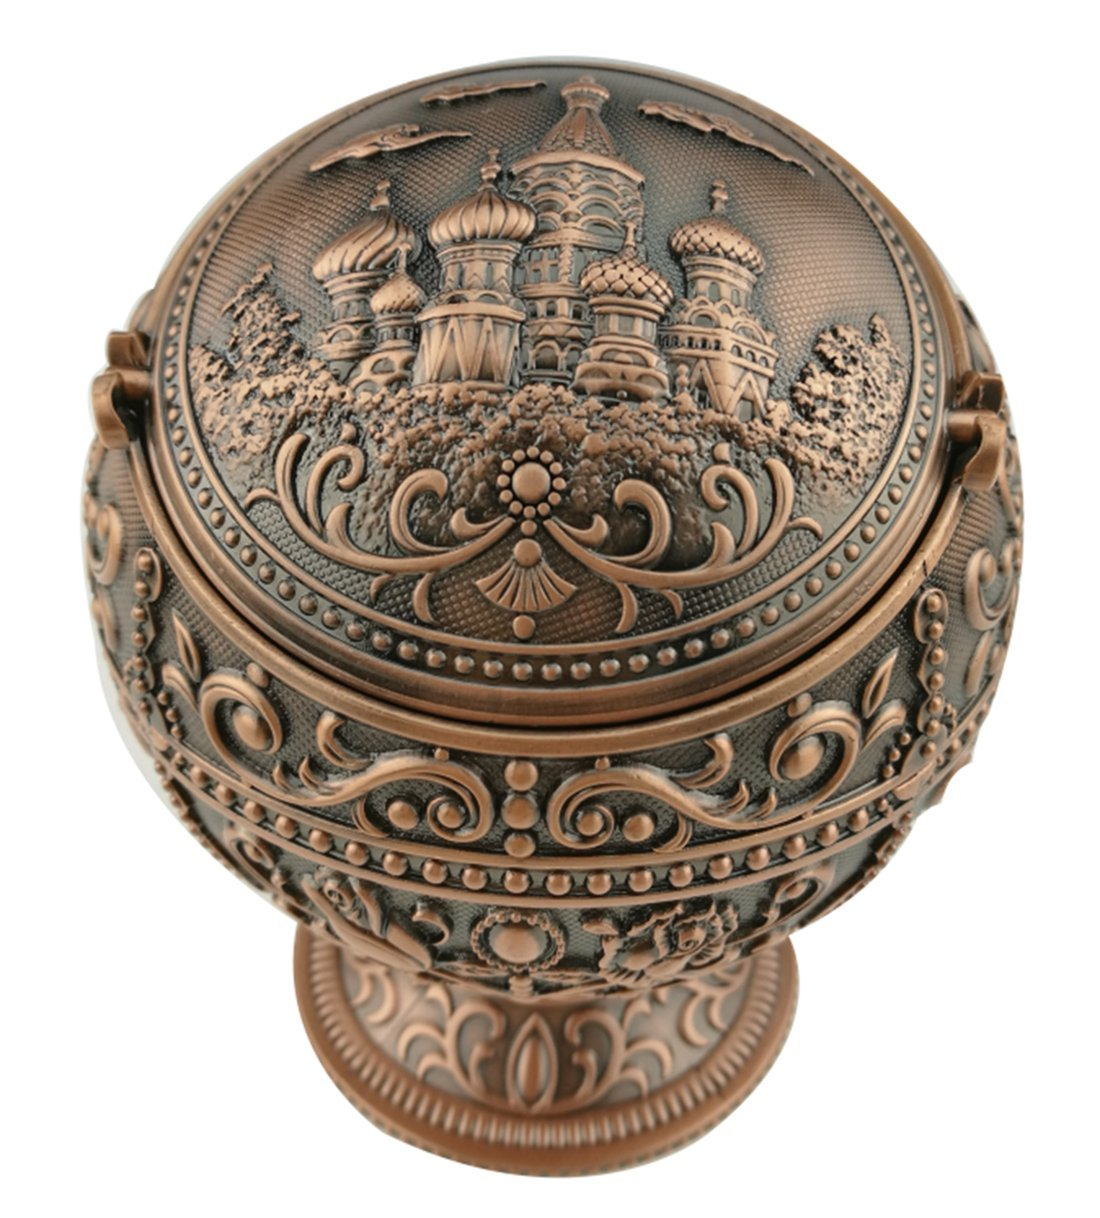 (Copper) - Exquisite Exotic Portable Windproof Smokeless Hand Stamped Pattern Spherical Ashtray With Lids Ash Holder Home Office Decoration Perfect Father's Day Dad Gift Business Gift (Copper) B072WT8RPH  コッパー